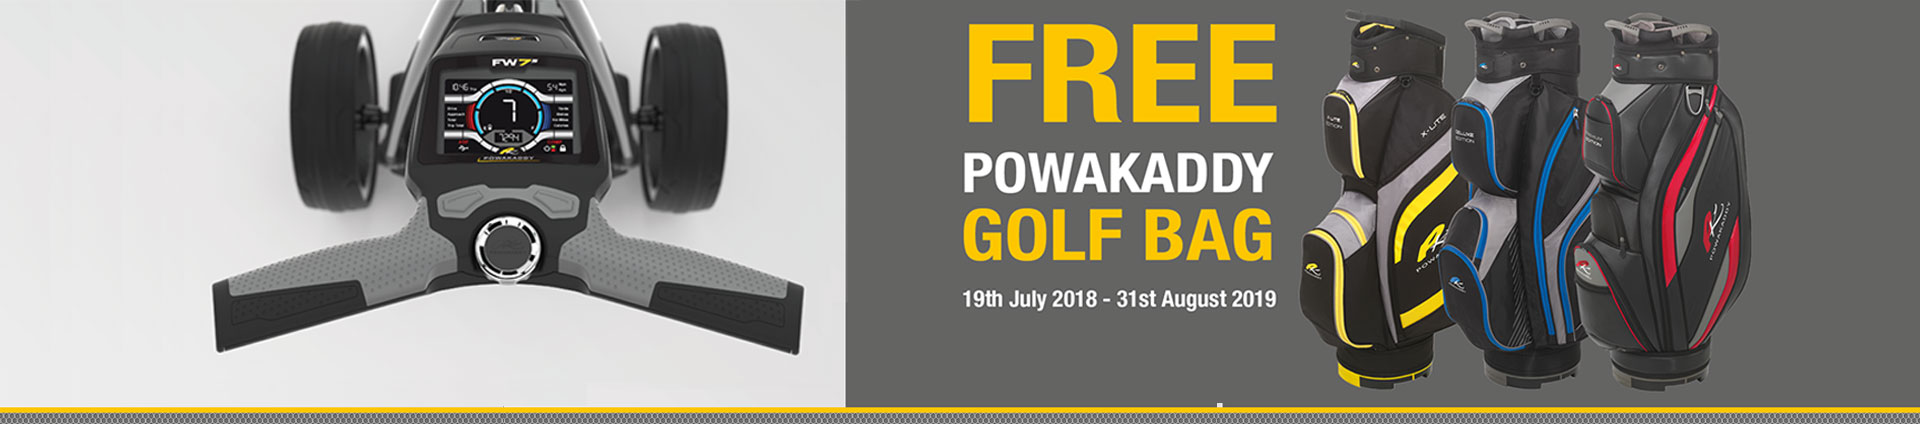 Powakaddy Free Bag when you purchase a FW7s or FW7 EBS golf trolley banner